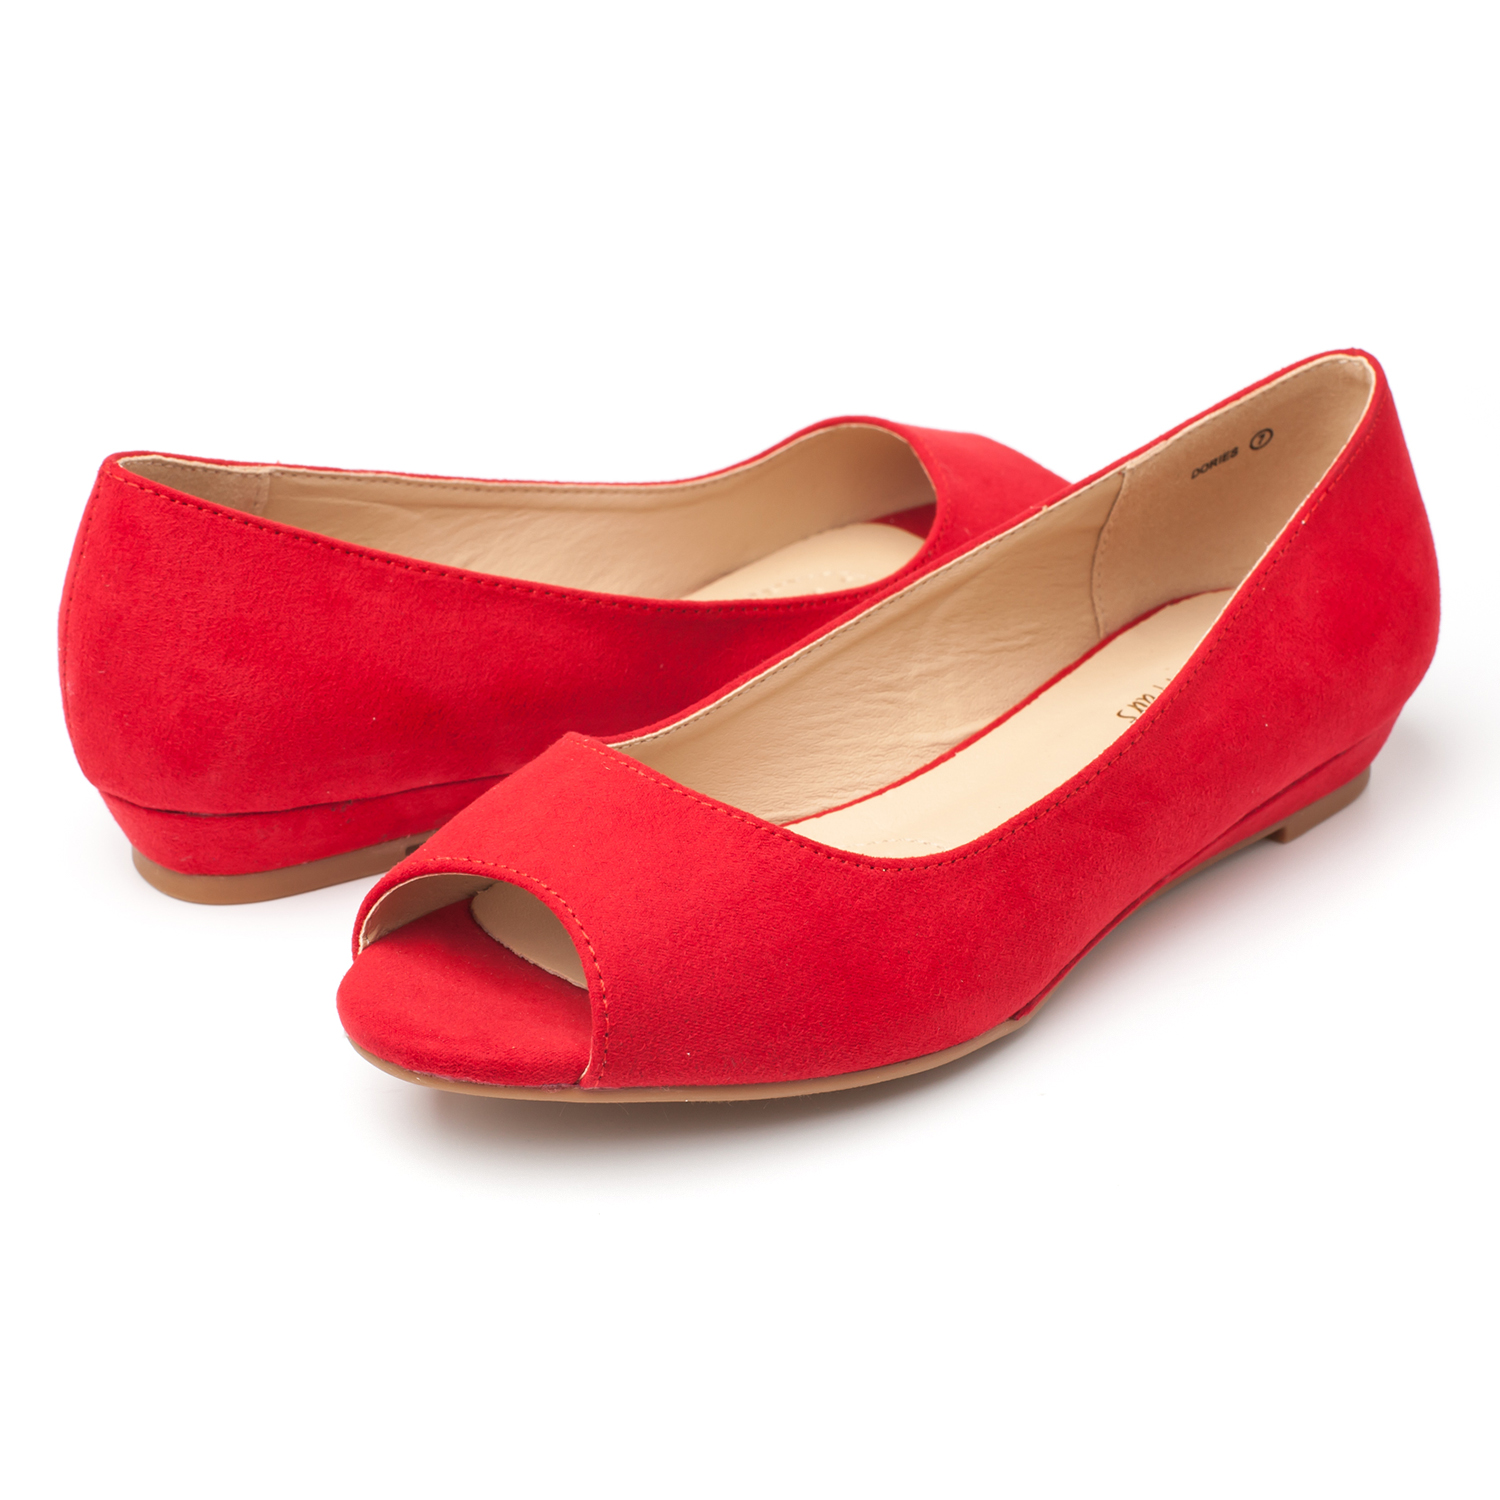 DREAM-PAIRS-Womens-Ballet-Flats-Low-Heel-Open-Toe-Slip-On-Dress-Flat-Shoes thumbnail 3